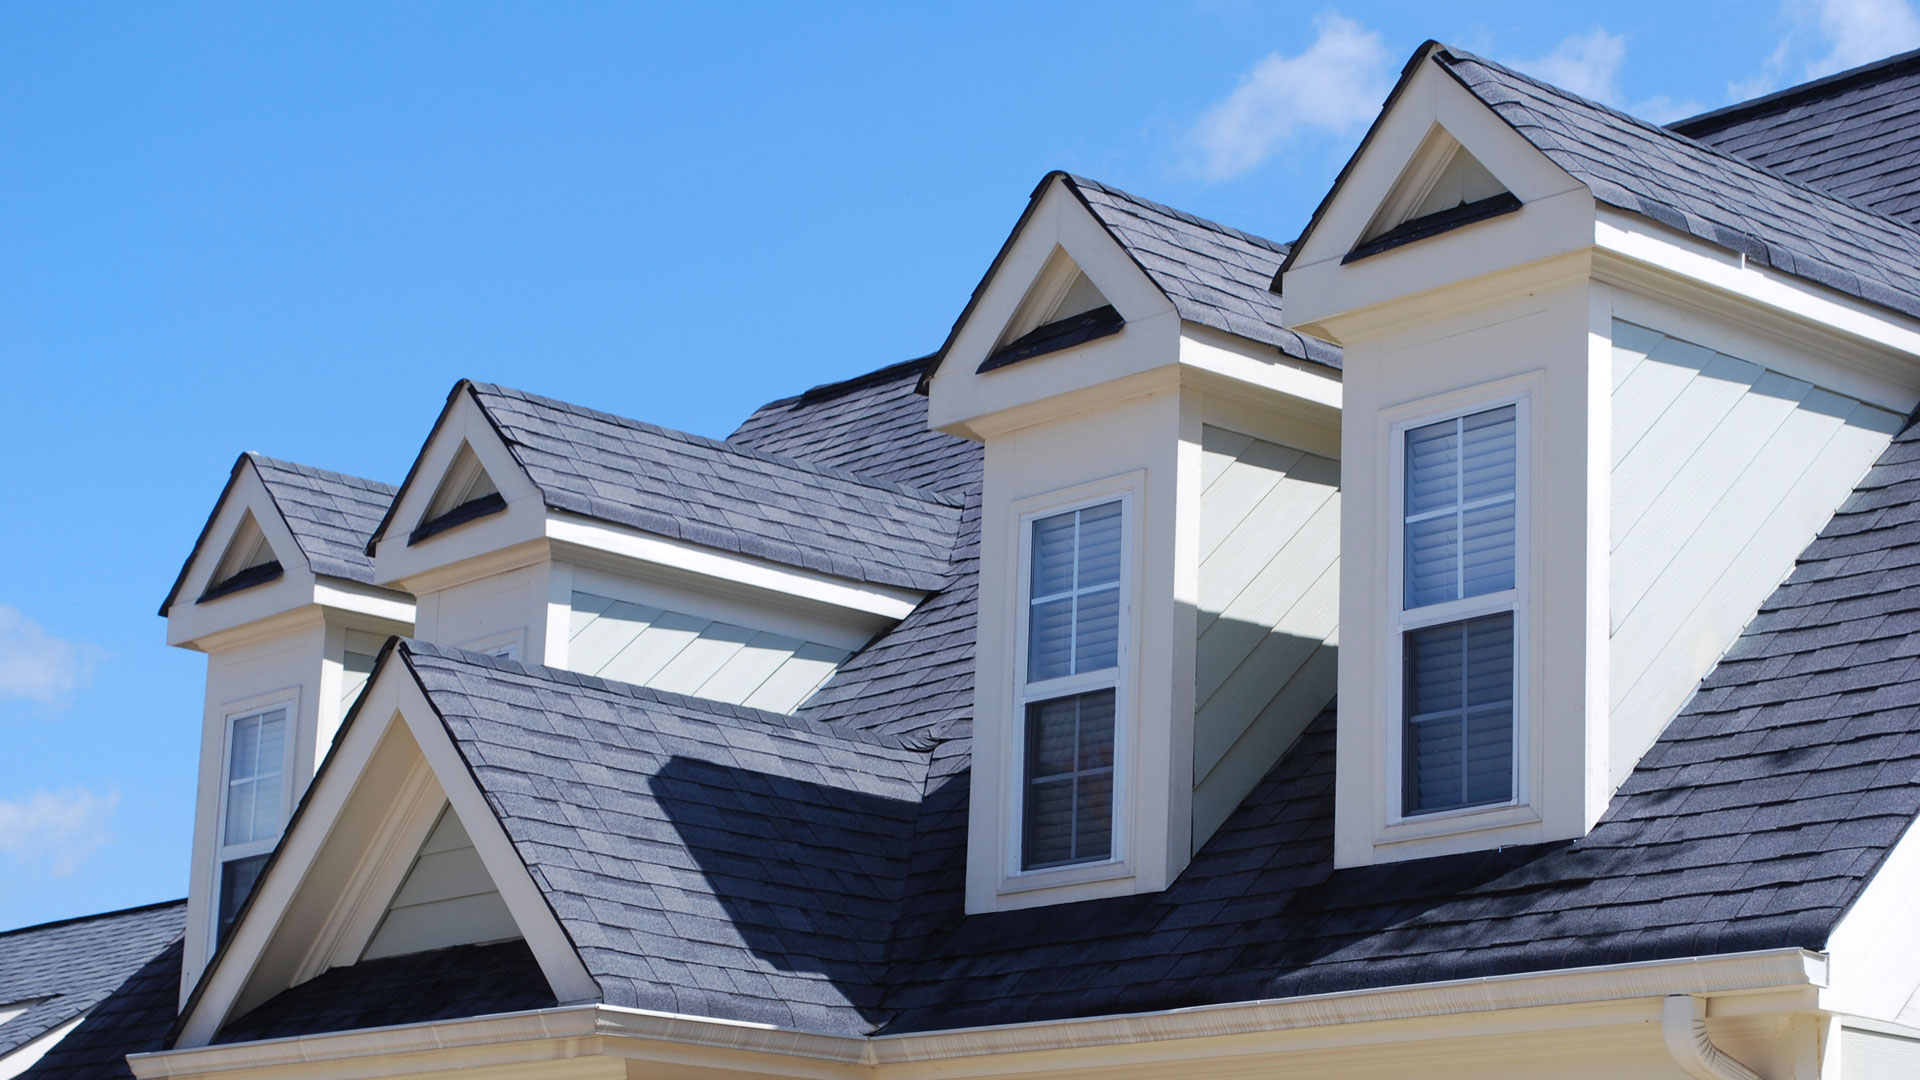 Whitemarsh Roofing